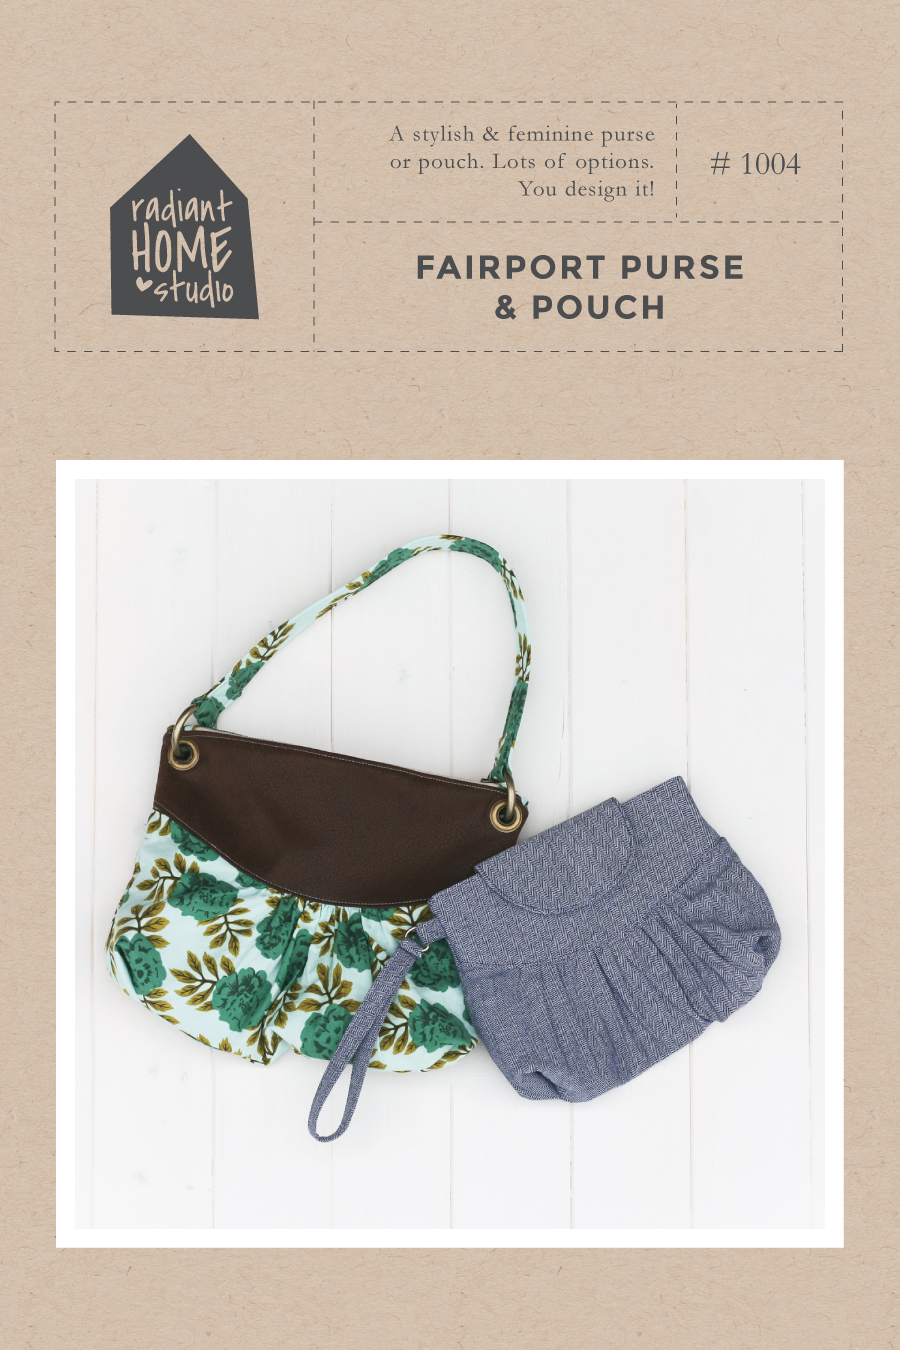 Fairport Purse & Pouch sewing pattern   Radiant Home Studio